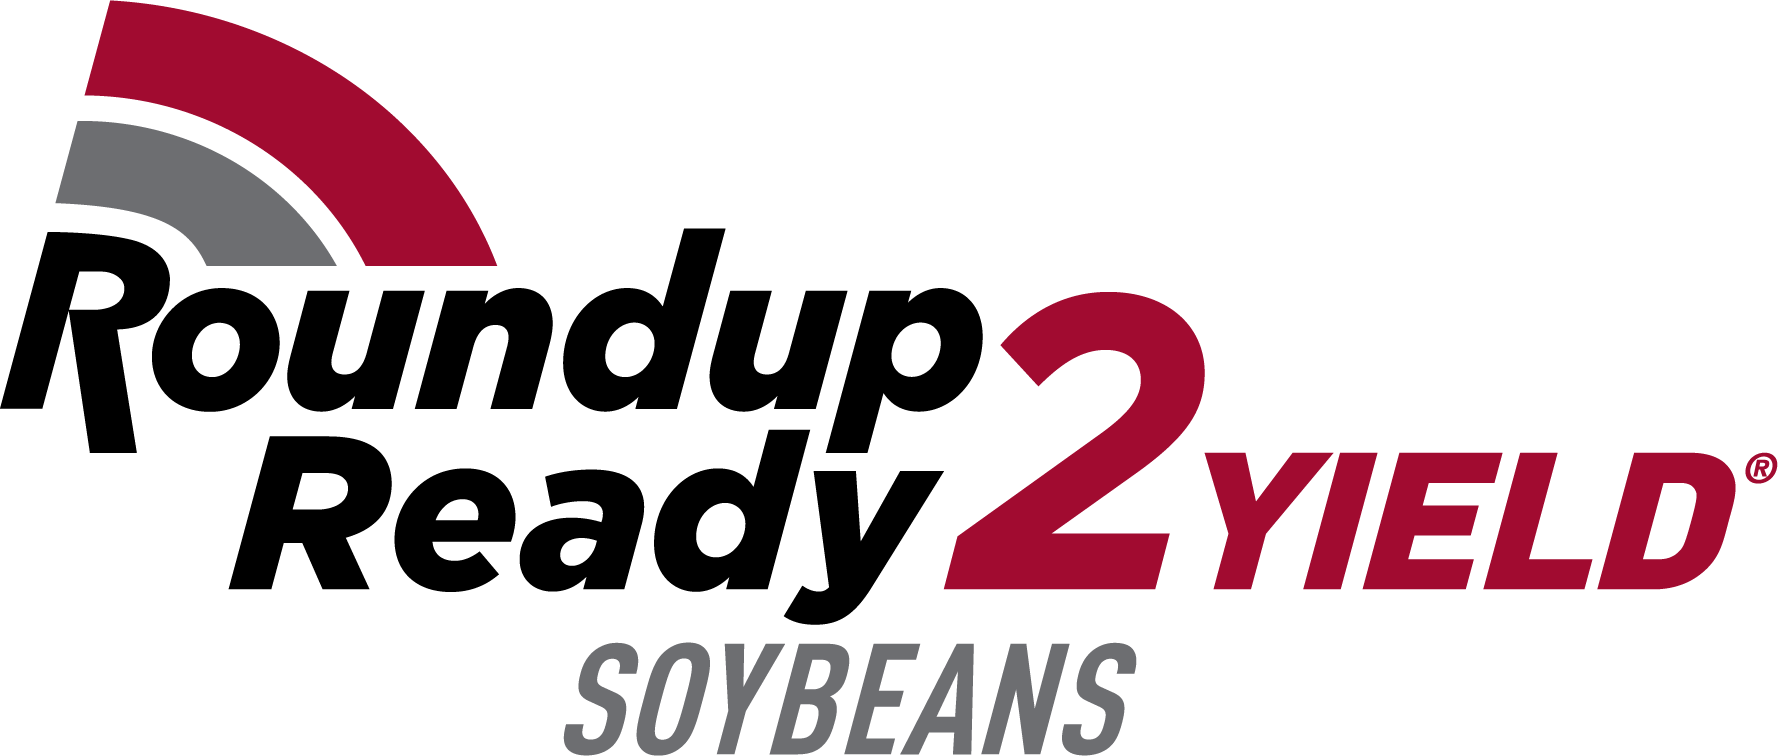 EPS_Roundup_Ready_2Yield_Soybeans_Color_CMYK (002).png